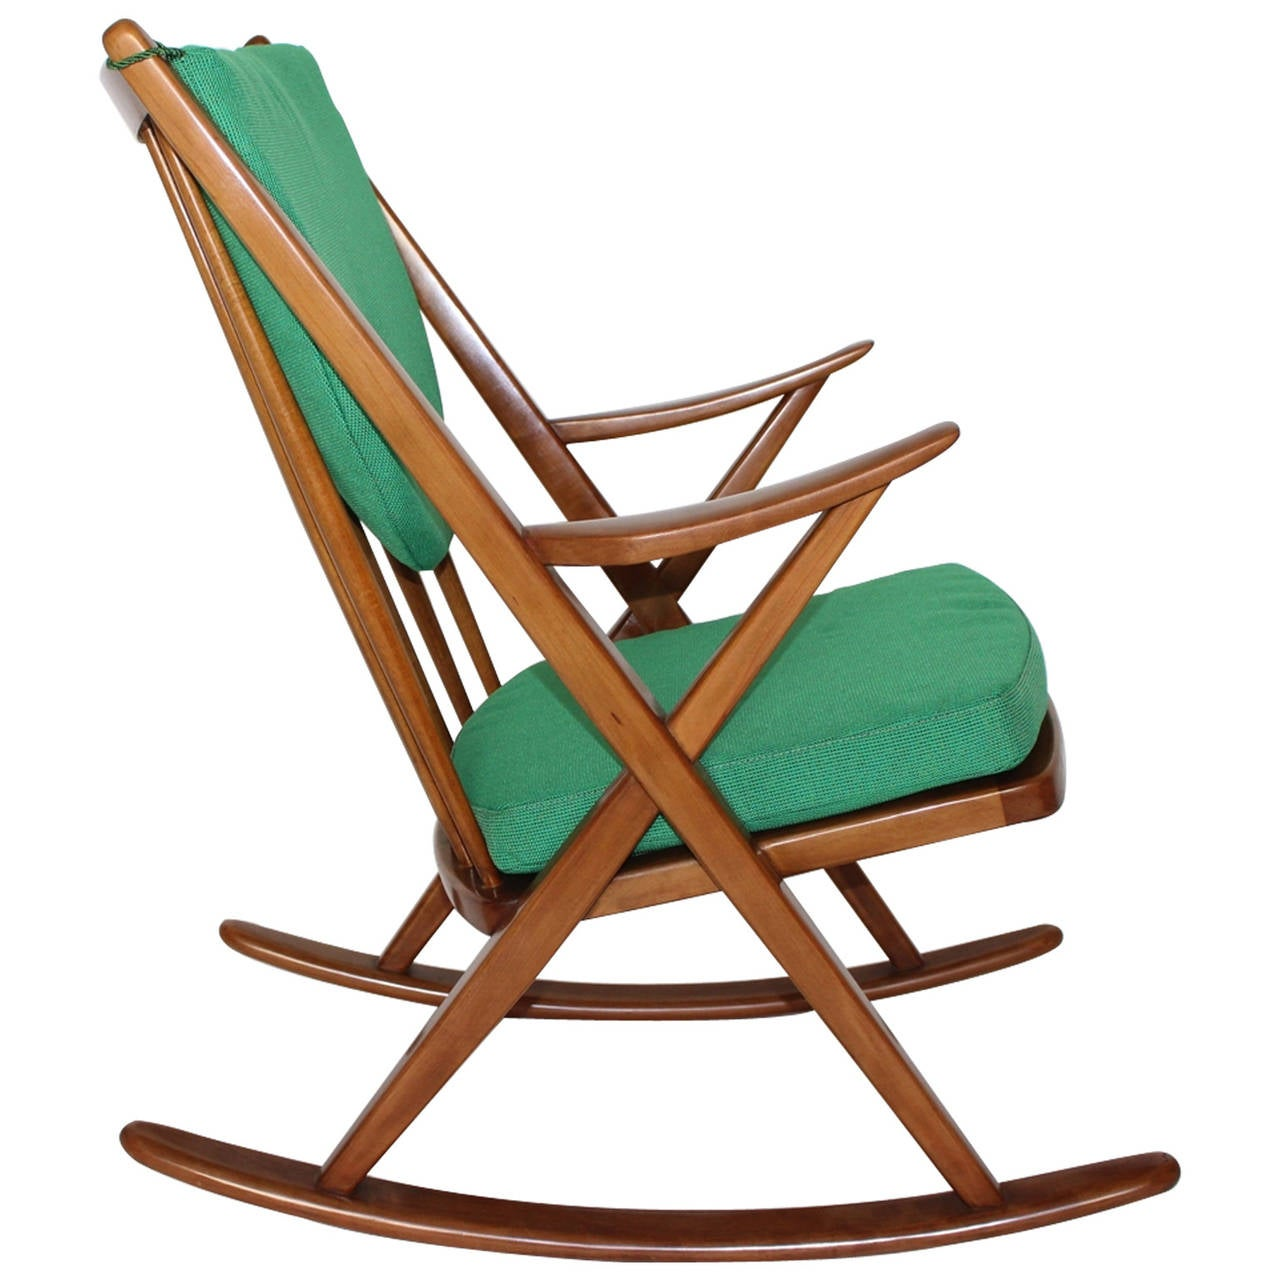 Scandinavian Modern Rocking Chair by Frank Reenskaug, circa 1960 - Rocking Chair By Roland Rainer Circa 1958, Vienna, Austria At 1stdibs